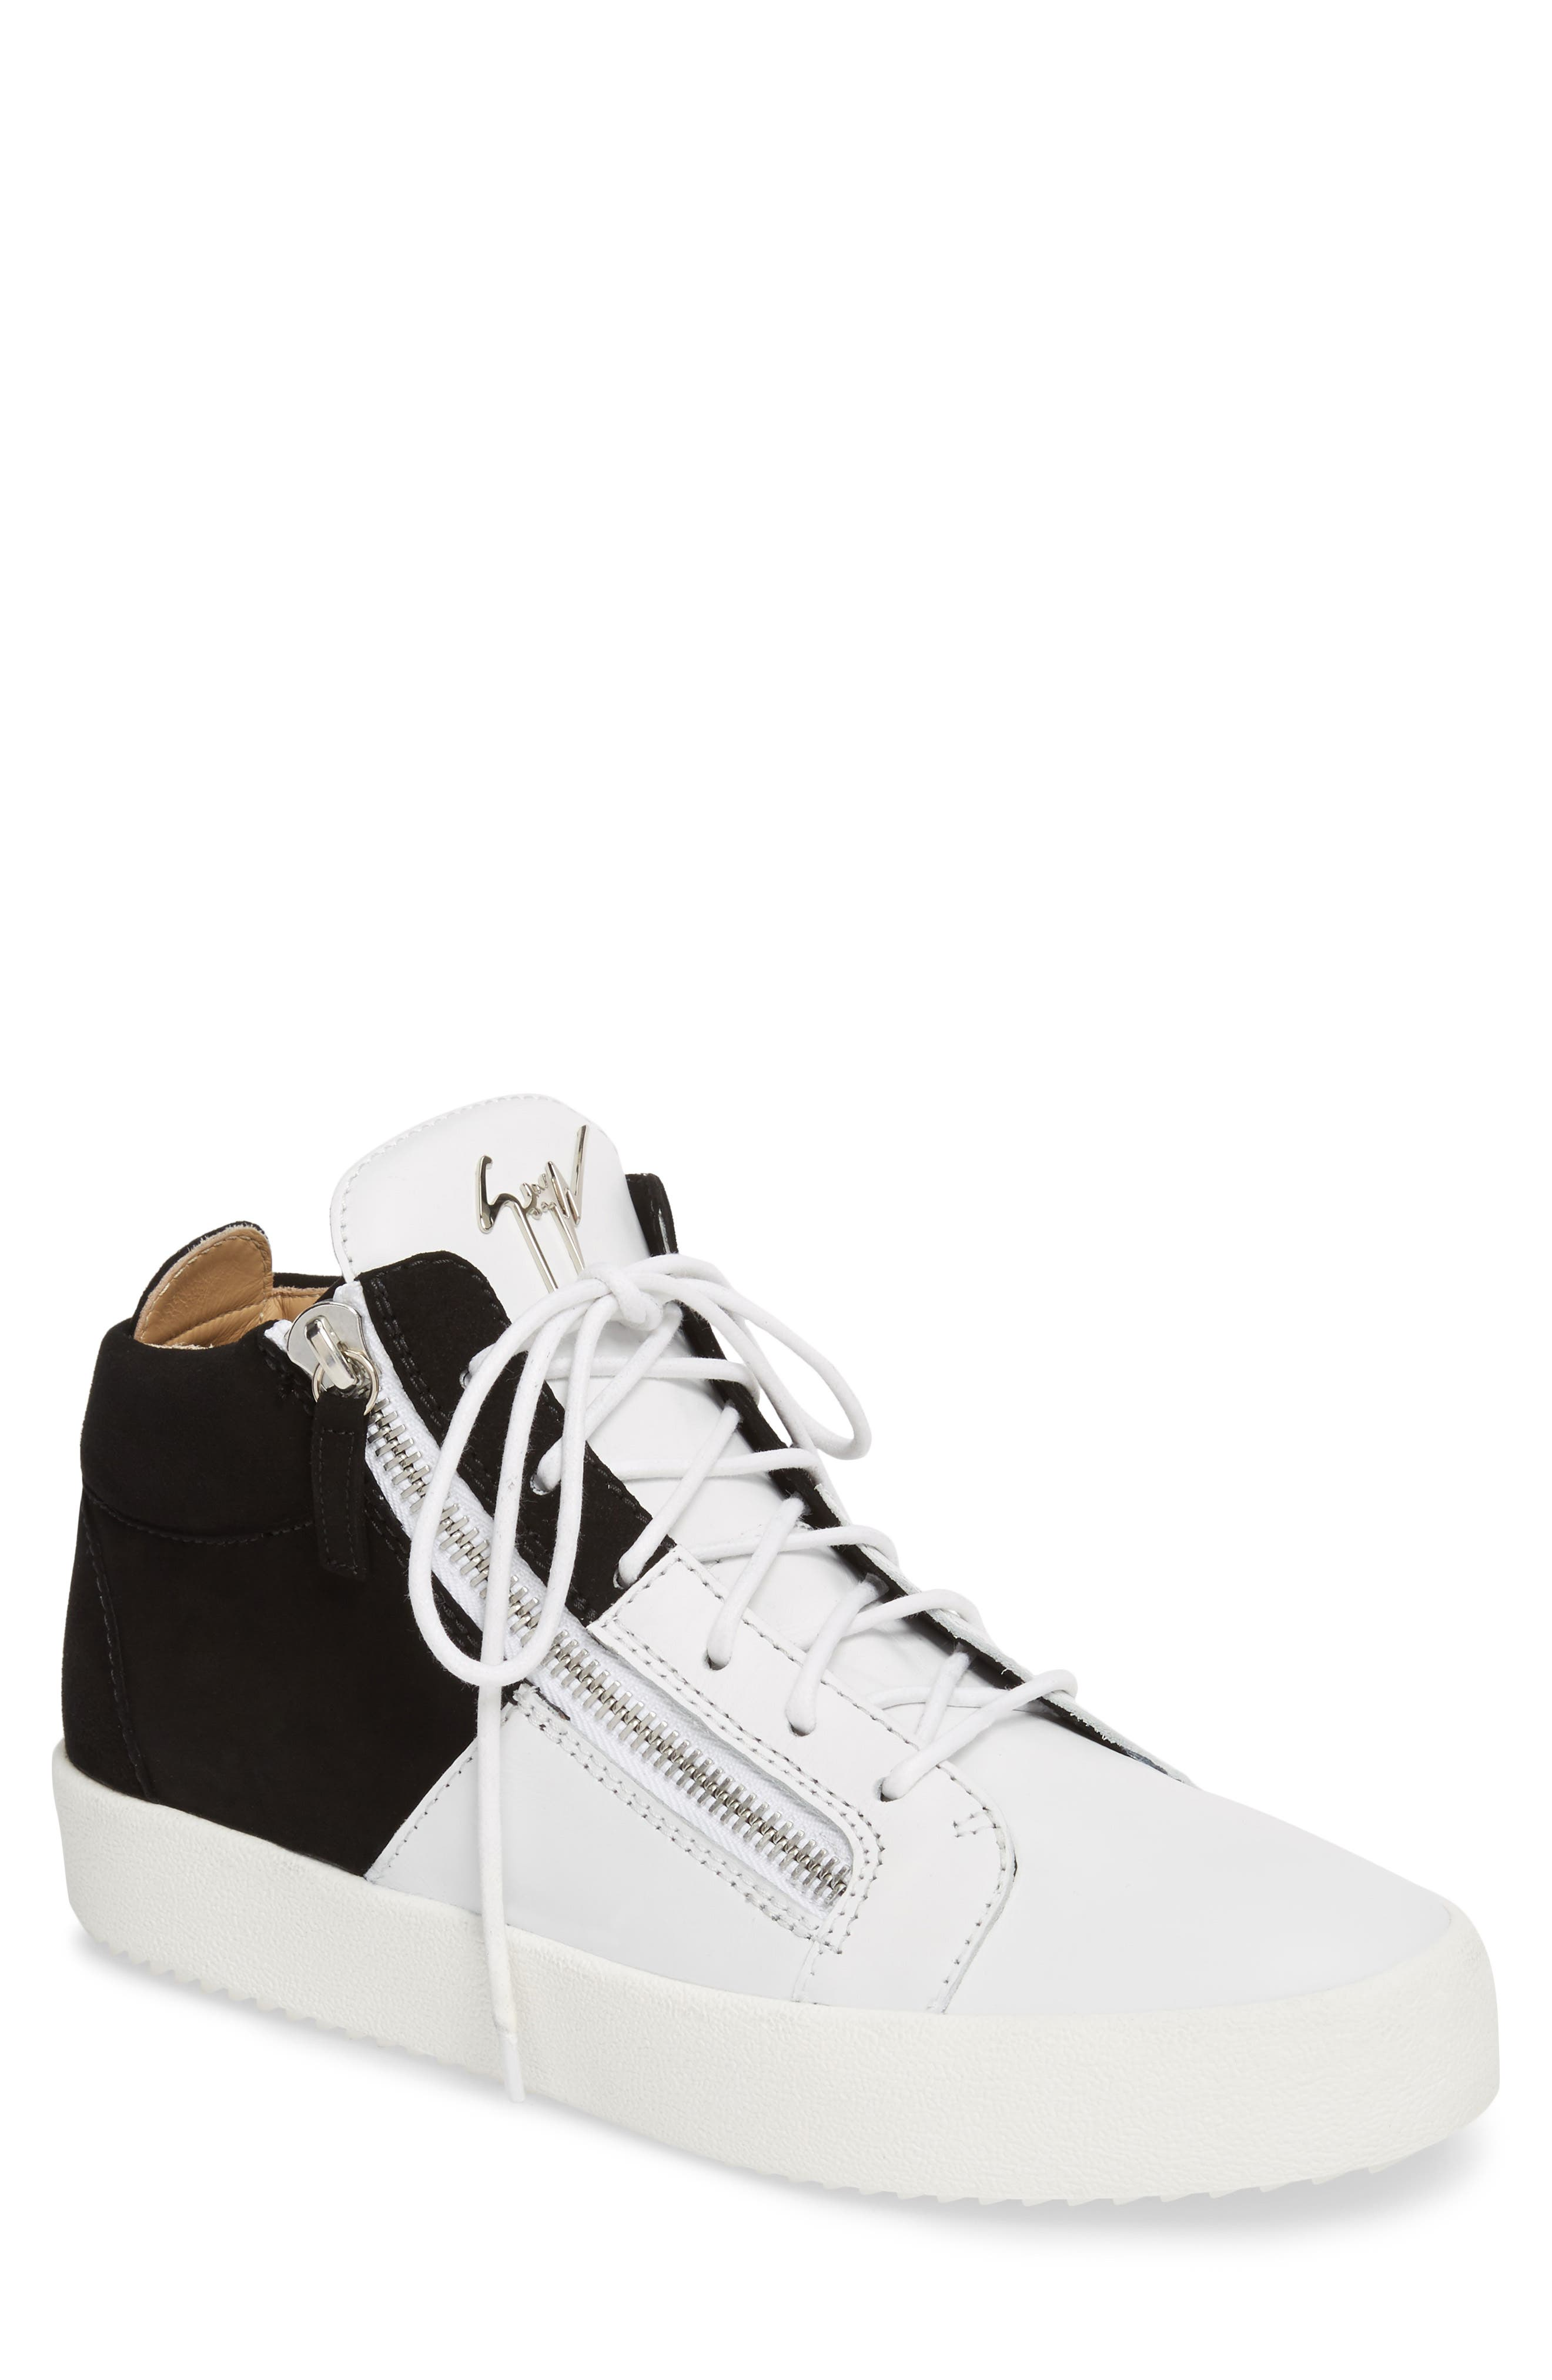 Exposed Sneaker,                         Main,                         color, Black/White